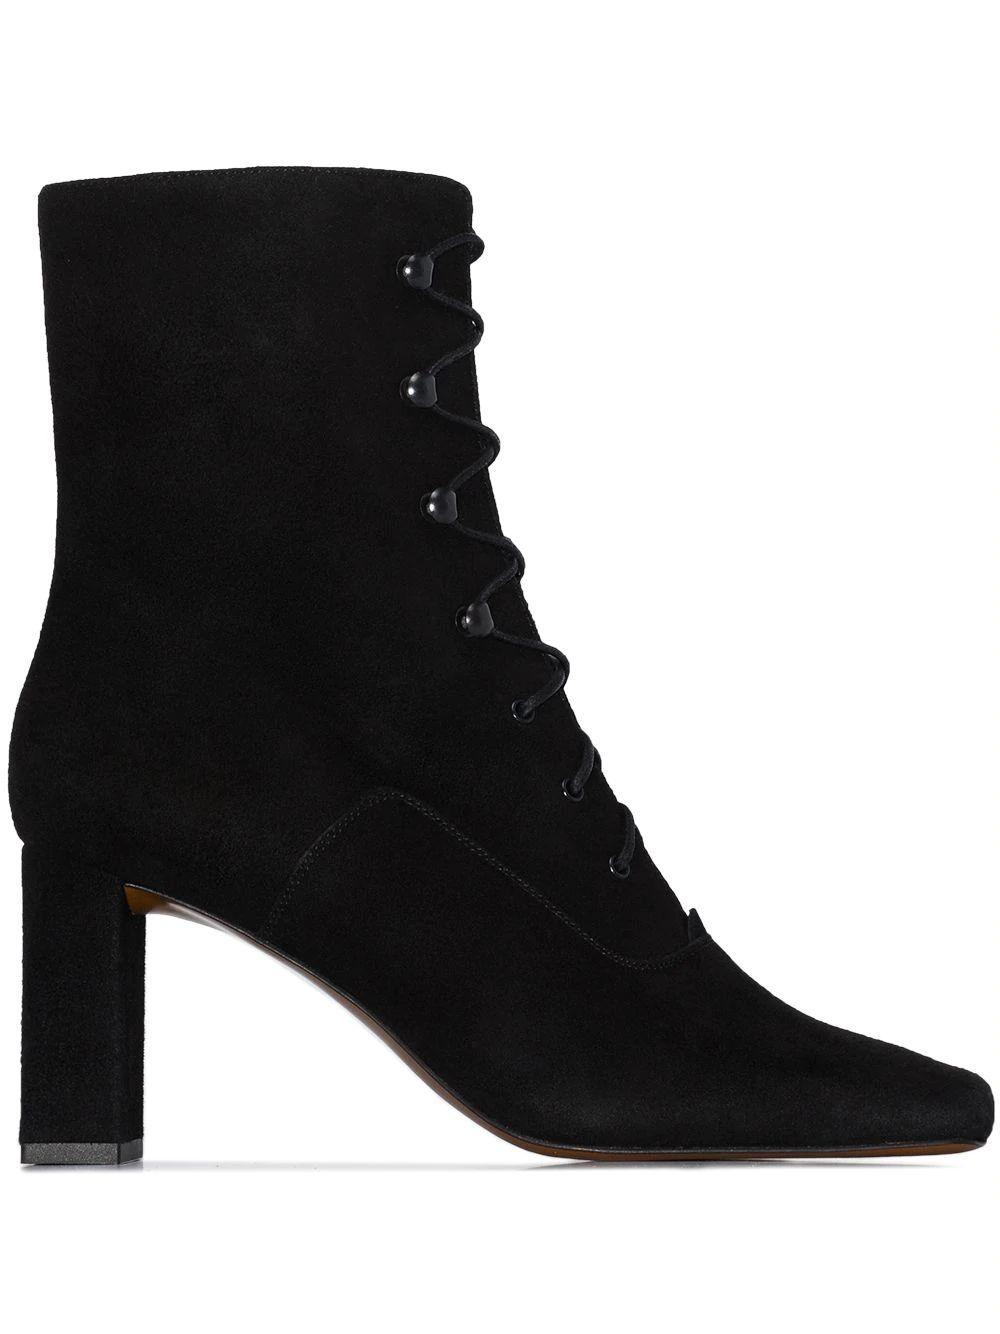 Claude Lace Up Bootie Item # 20PFCLDBBLCS